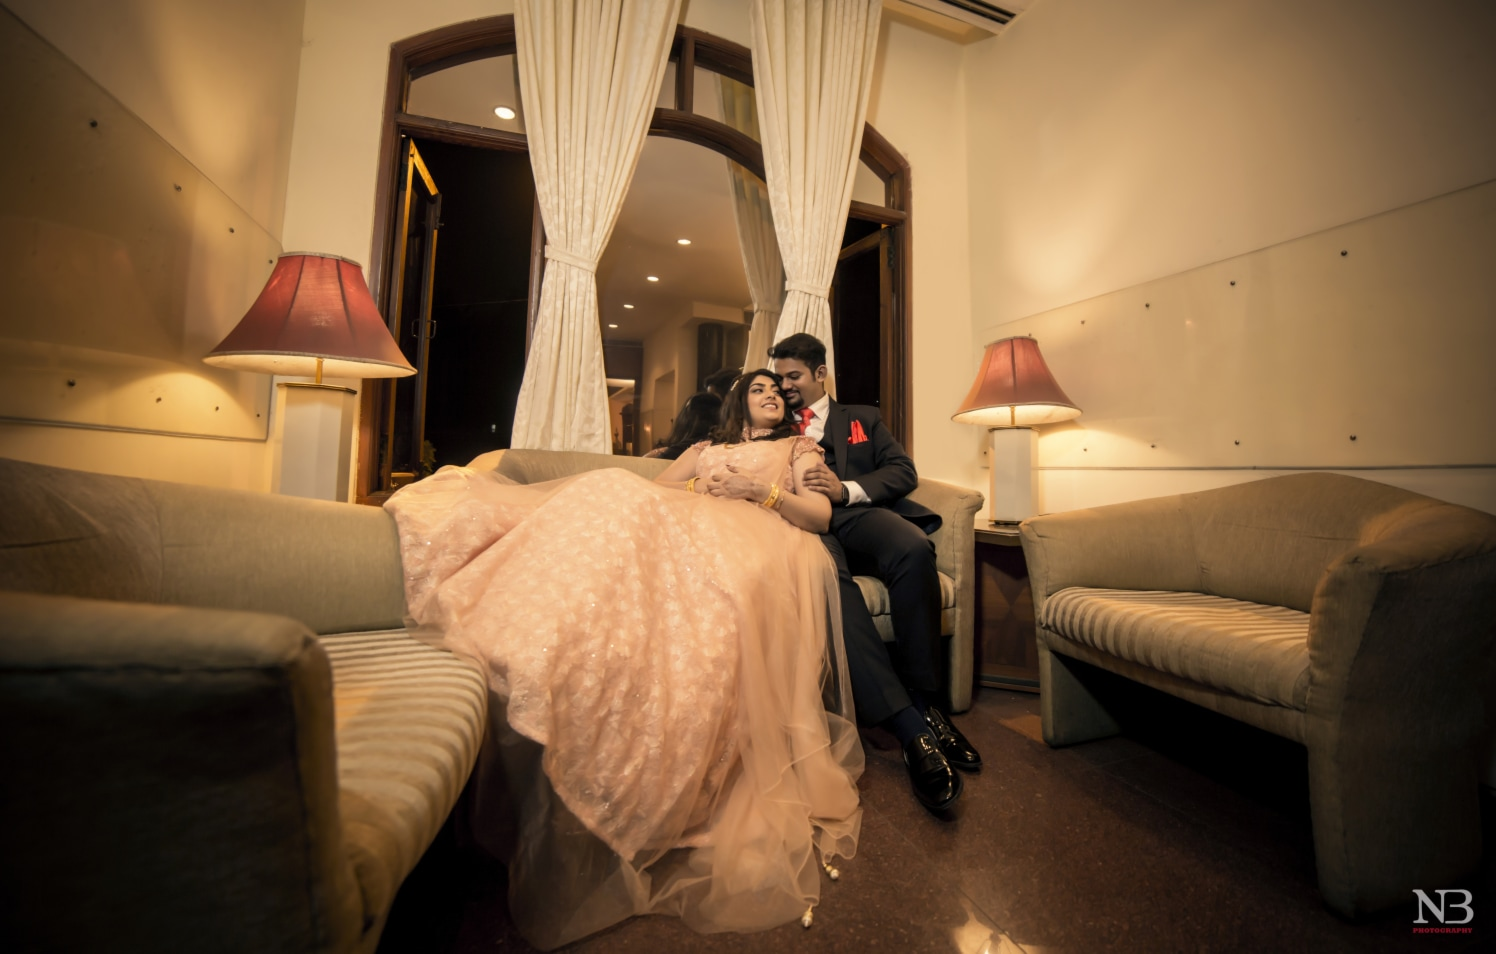 Engagement Shoot In A Lavished Interior by Nikhil Y. Bharane Wedding-photography | Weddings Photos & Ideas